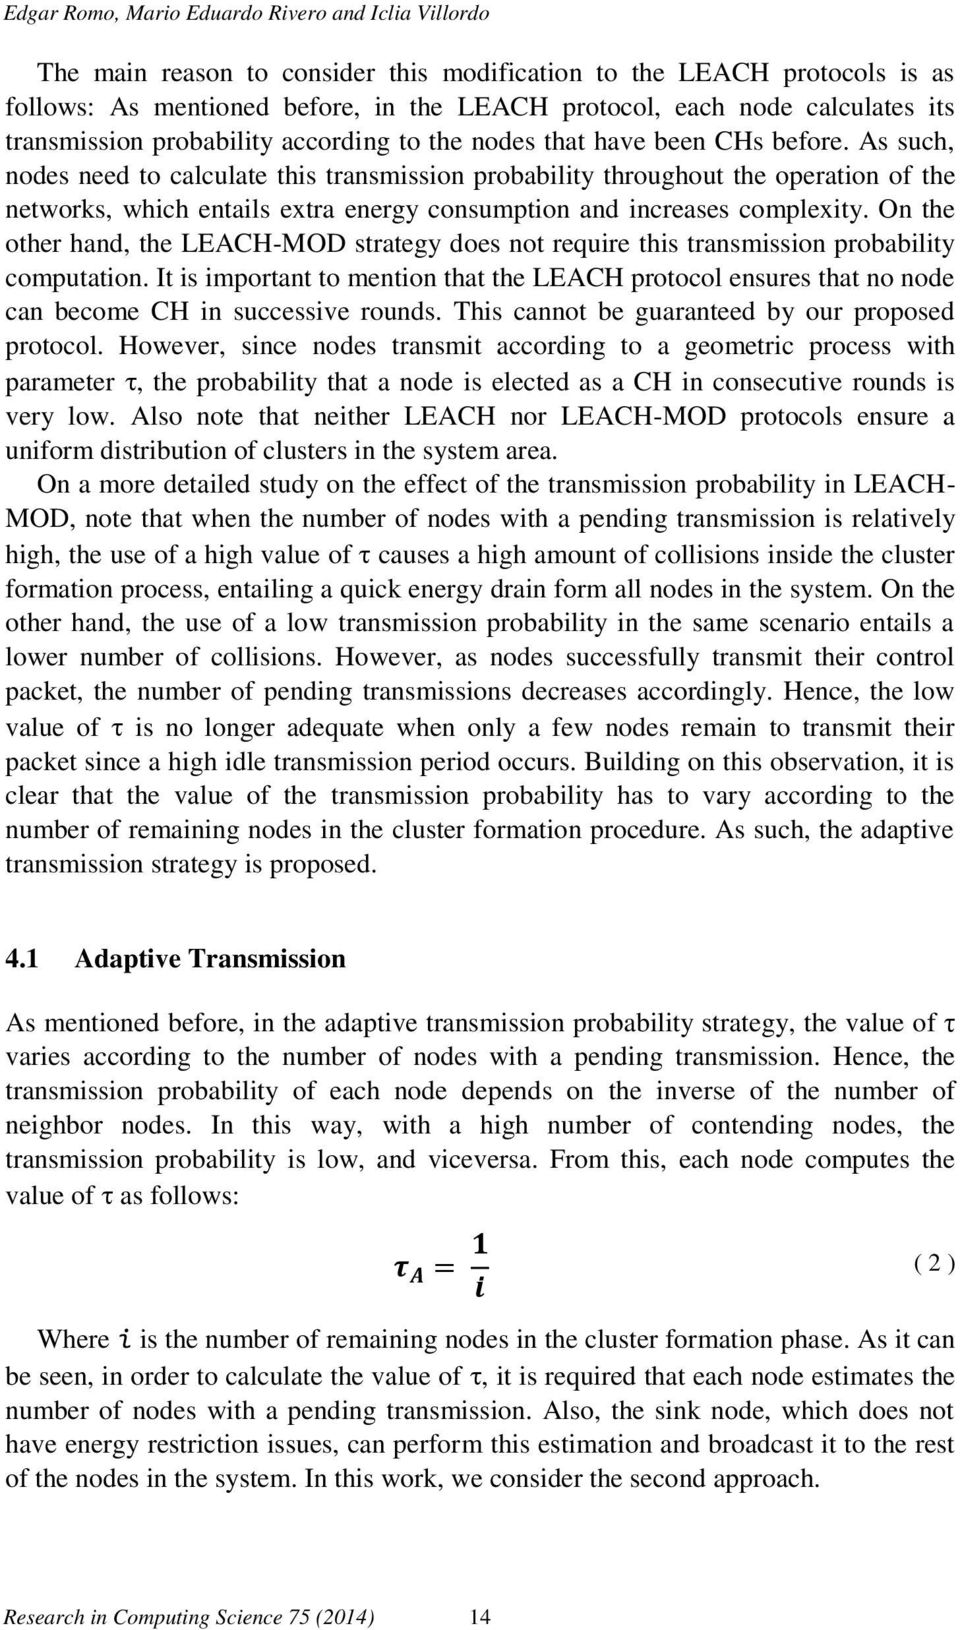 As such, nodes need to calculate this transmission probability throughout the operation of the networks, which entails extra energy consumption and increases complexity.